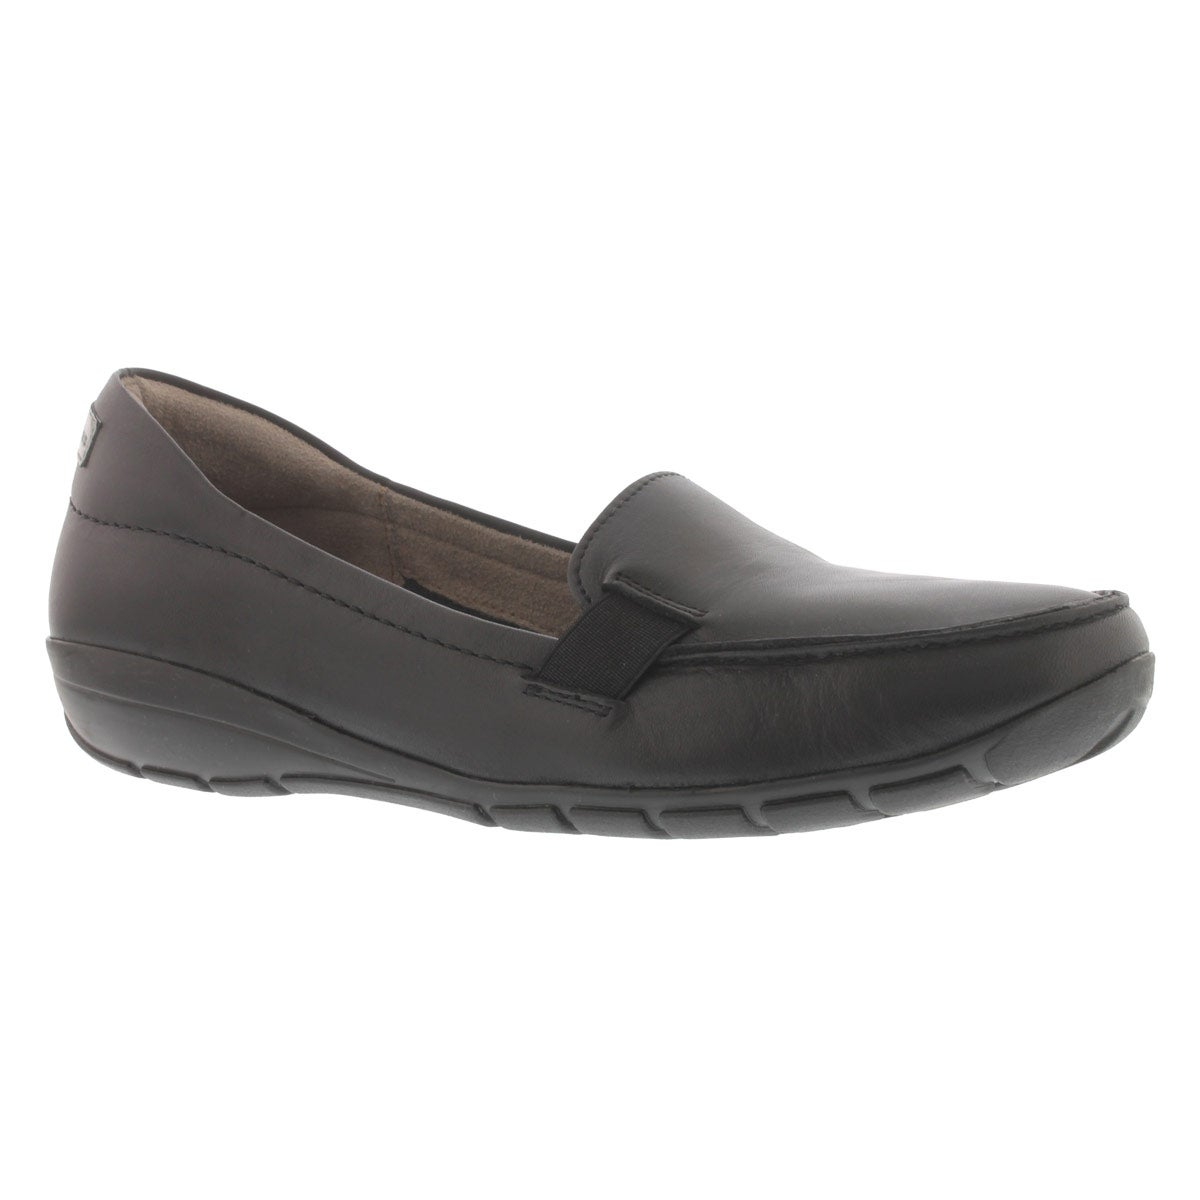 Women's TILLY DANDY black slip on casual shoes